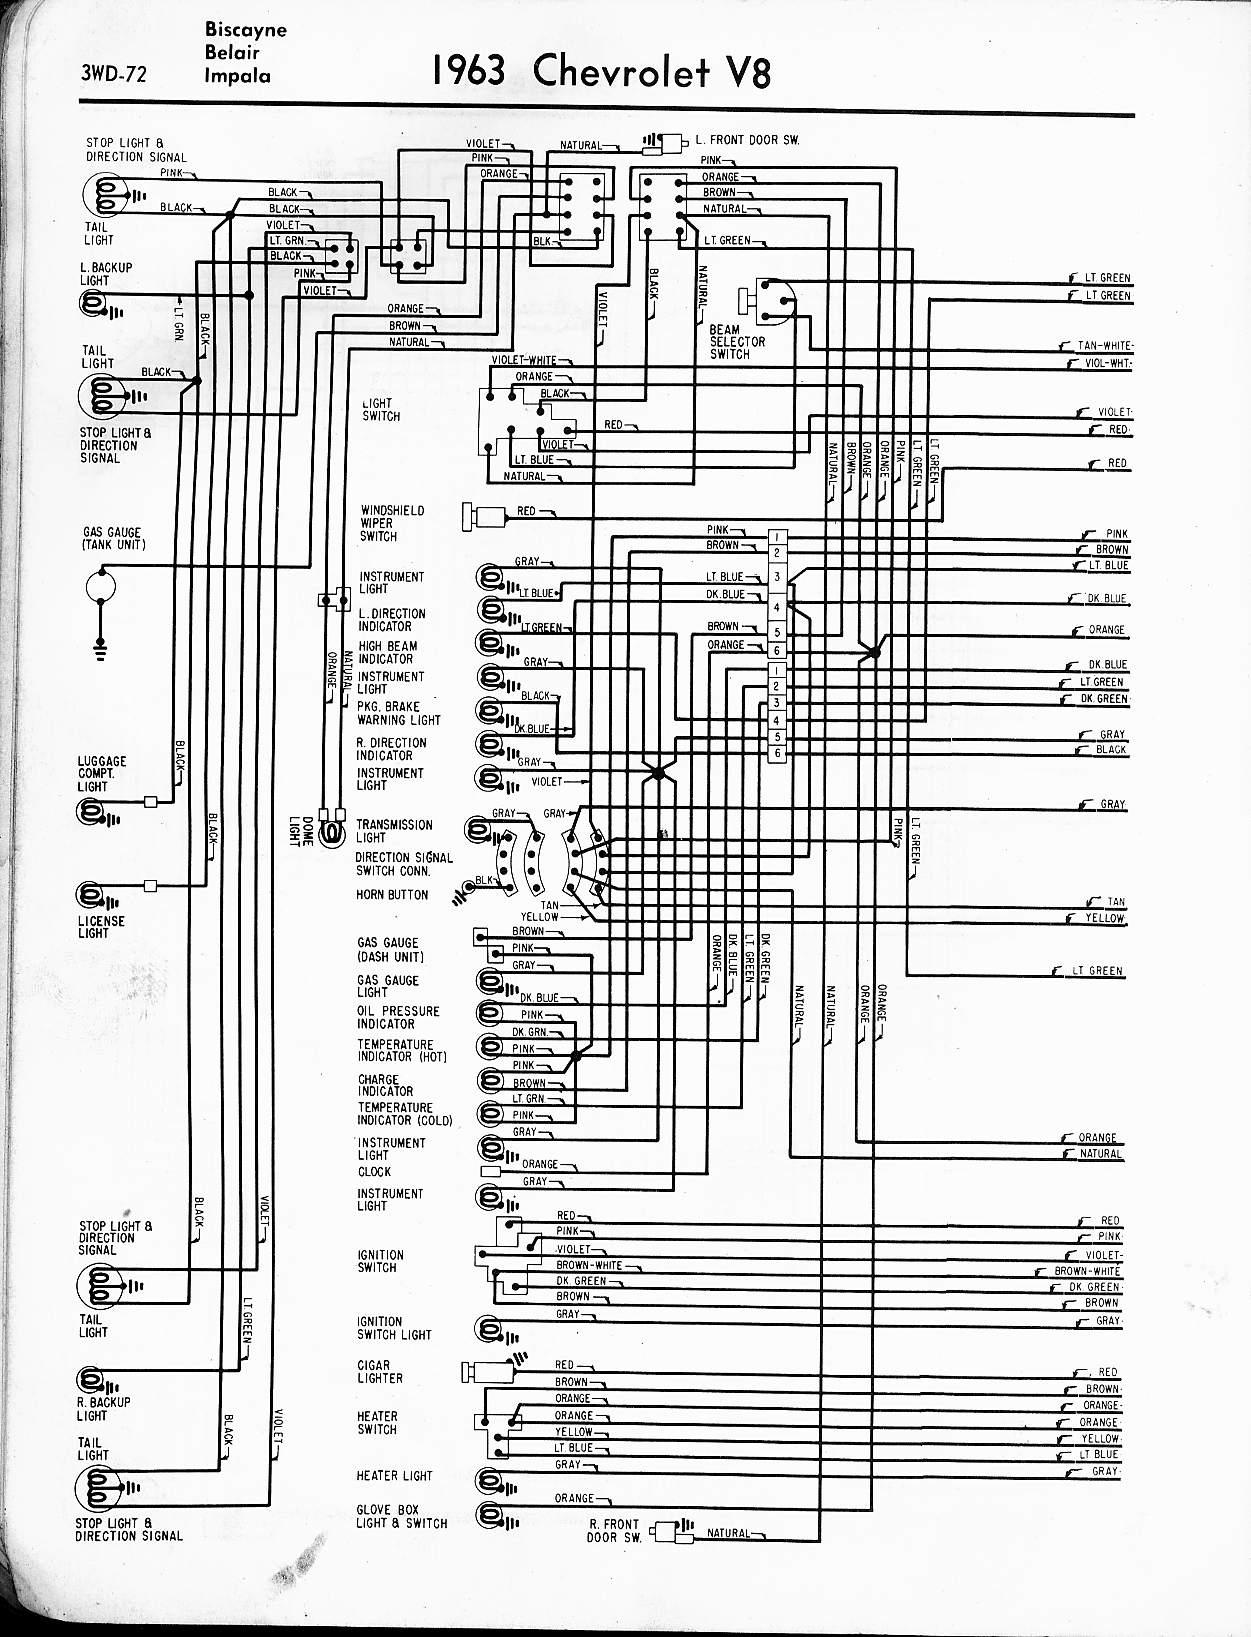 1965 chevy impala ignition switch wiring diagram 2005 chevy impala ignition switch wiring diagram #2